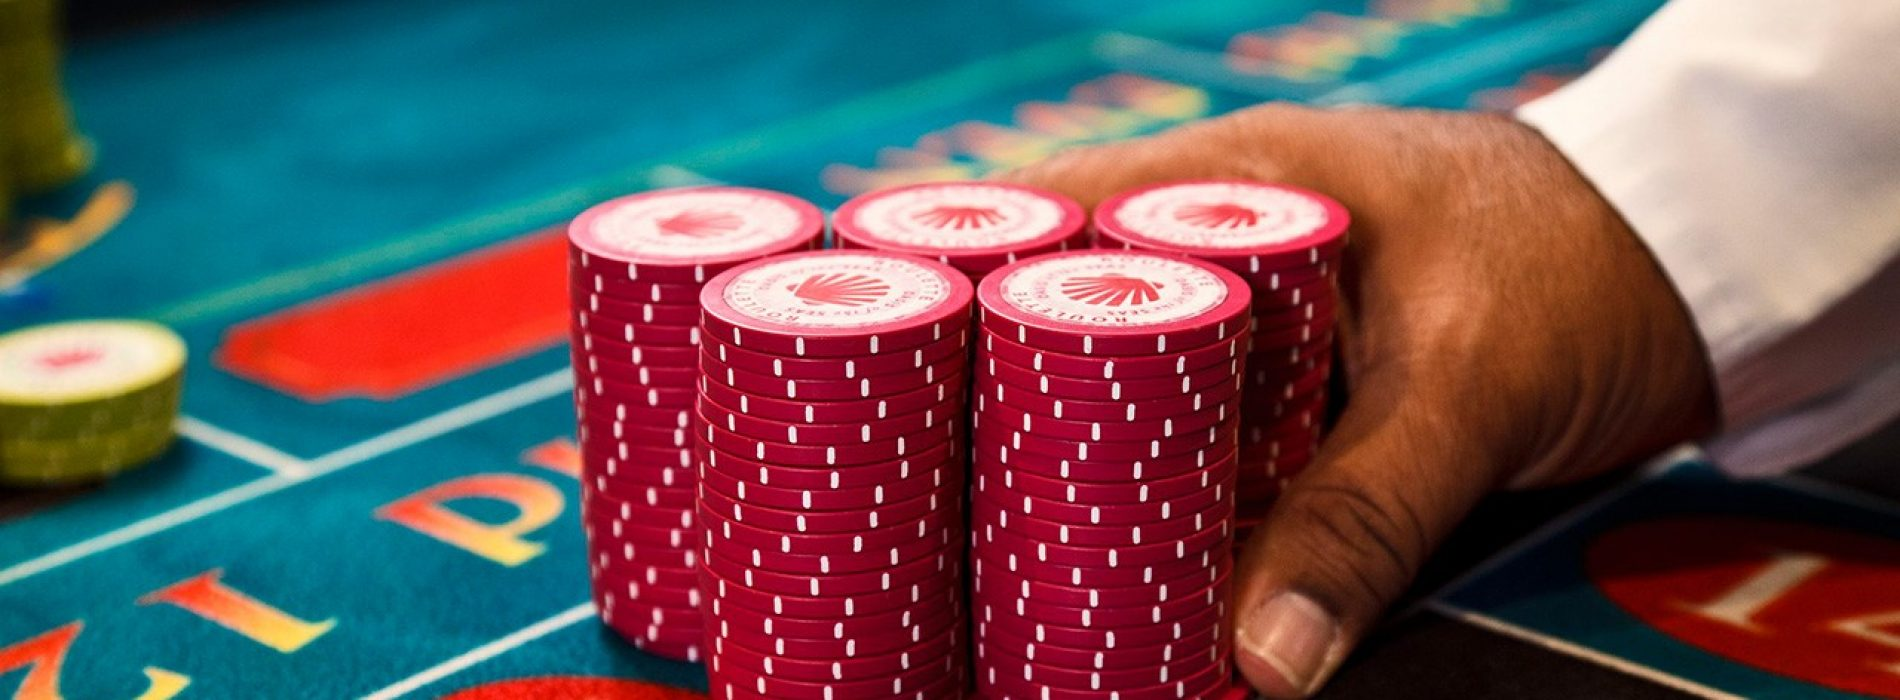 Everything You Need To Know About Online Casino Platform And Slot Machines!